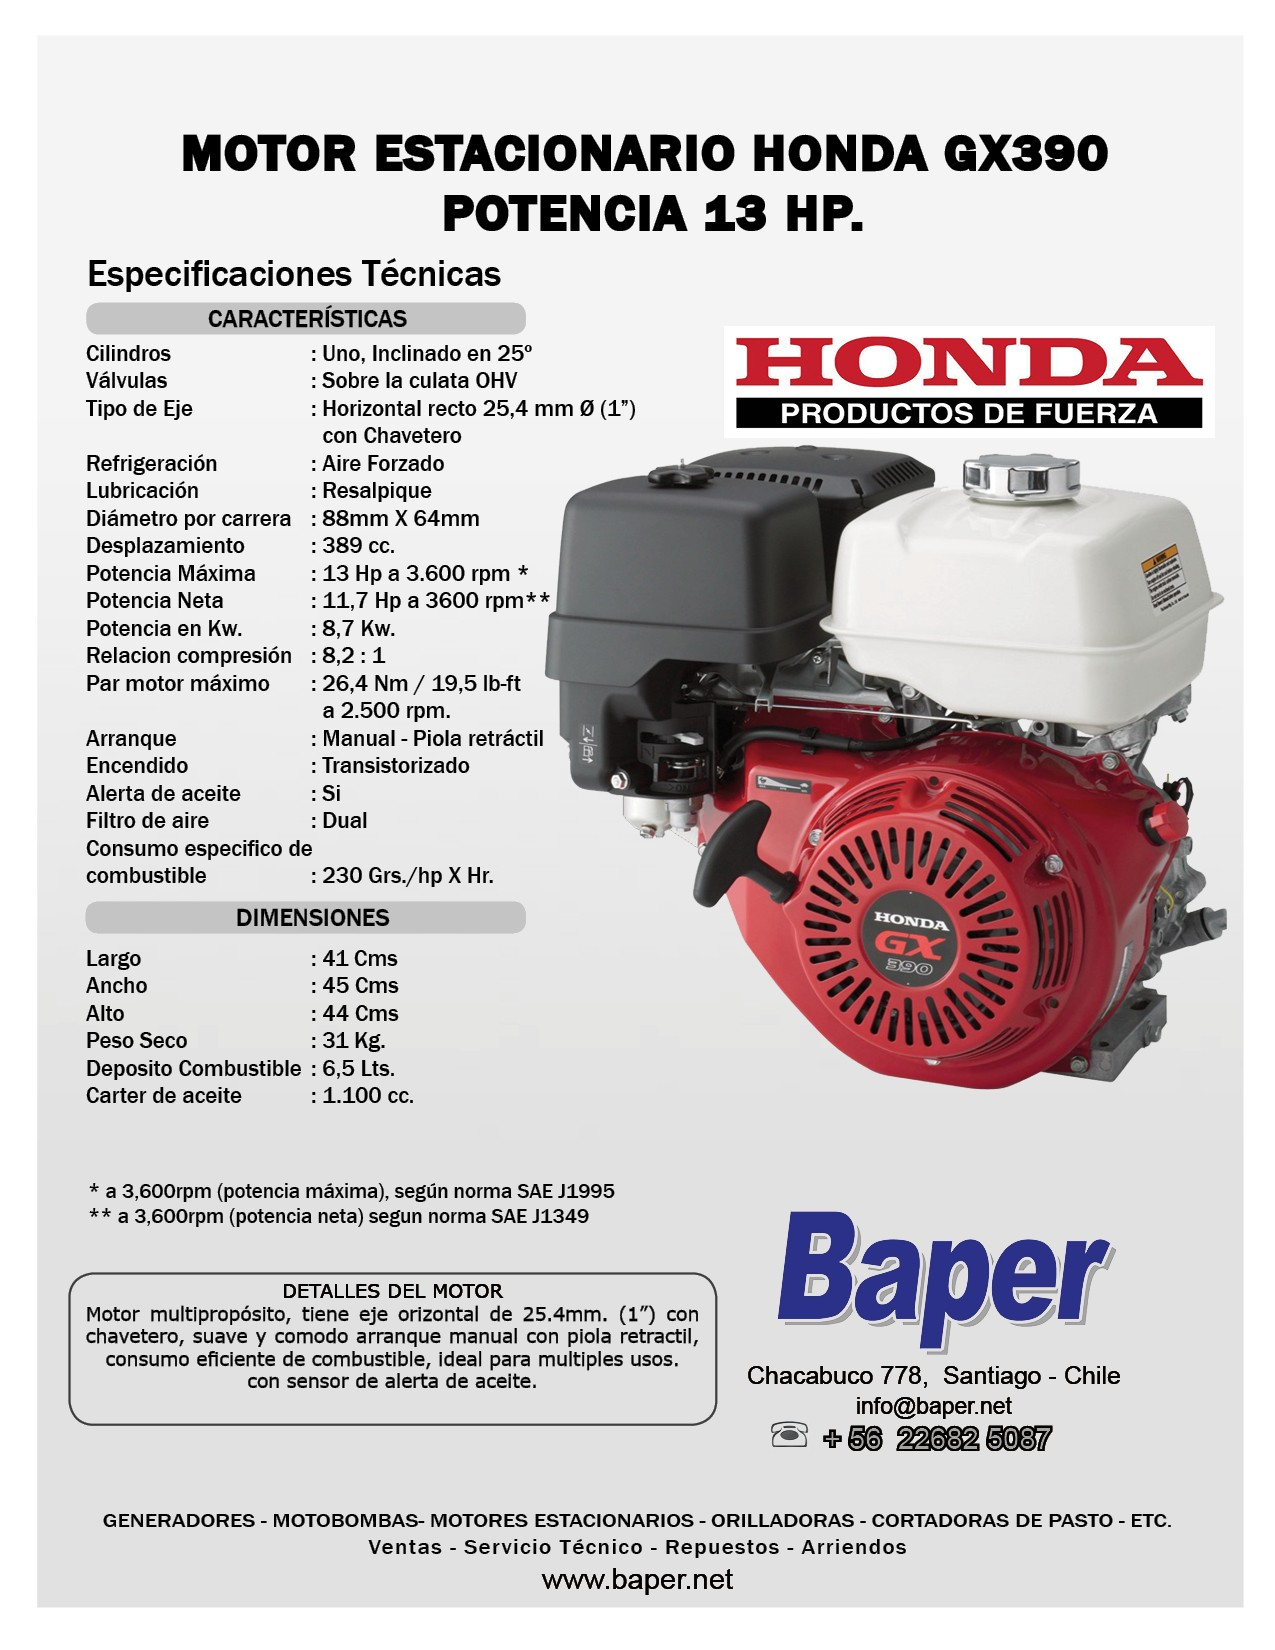 Honda Gx390 Parts Diagram Motor Estacionario Honda Bencinero Gx390 13hp Arranque Manual Baper Of Honda Gx390 Parts Diagram